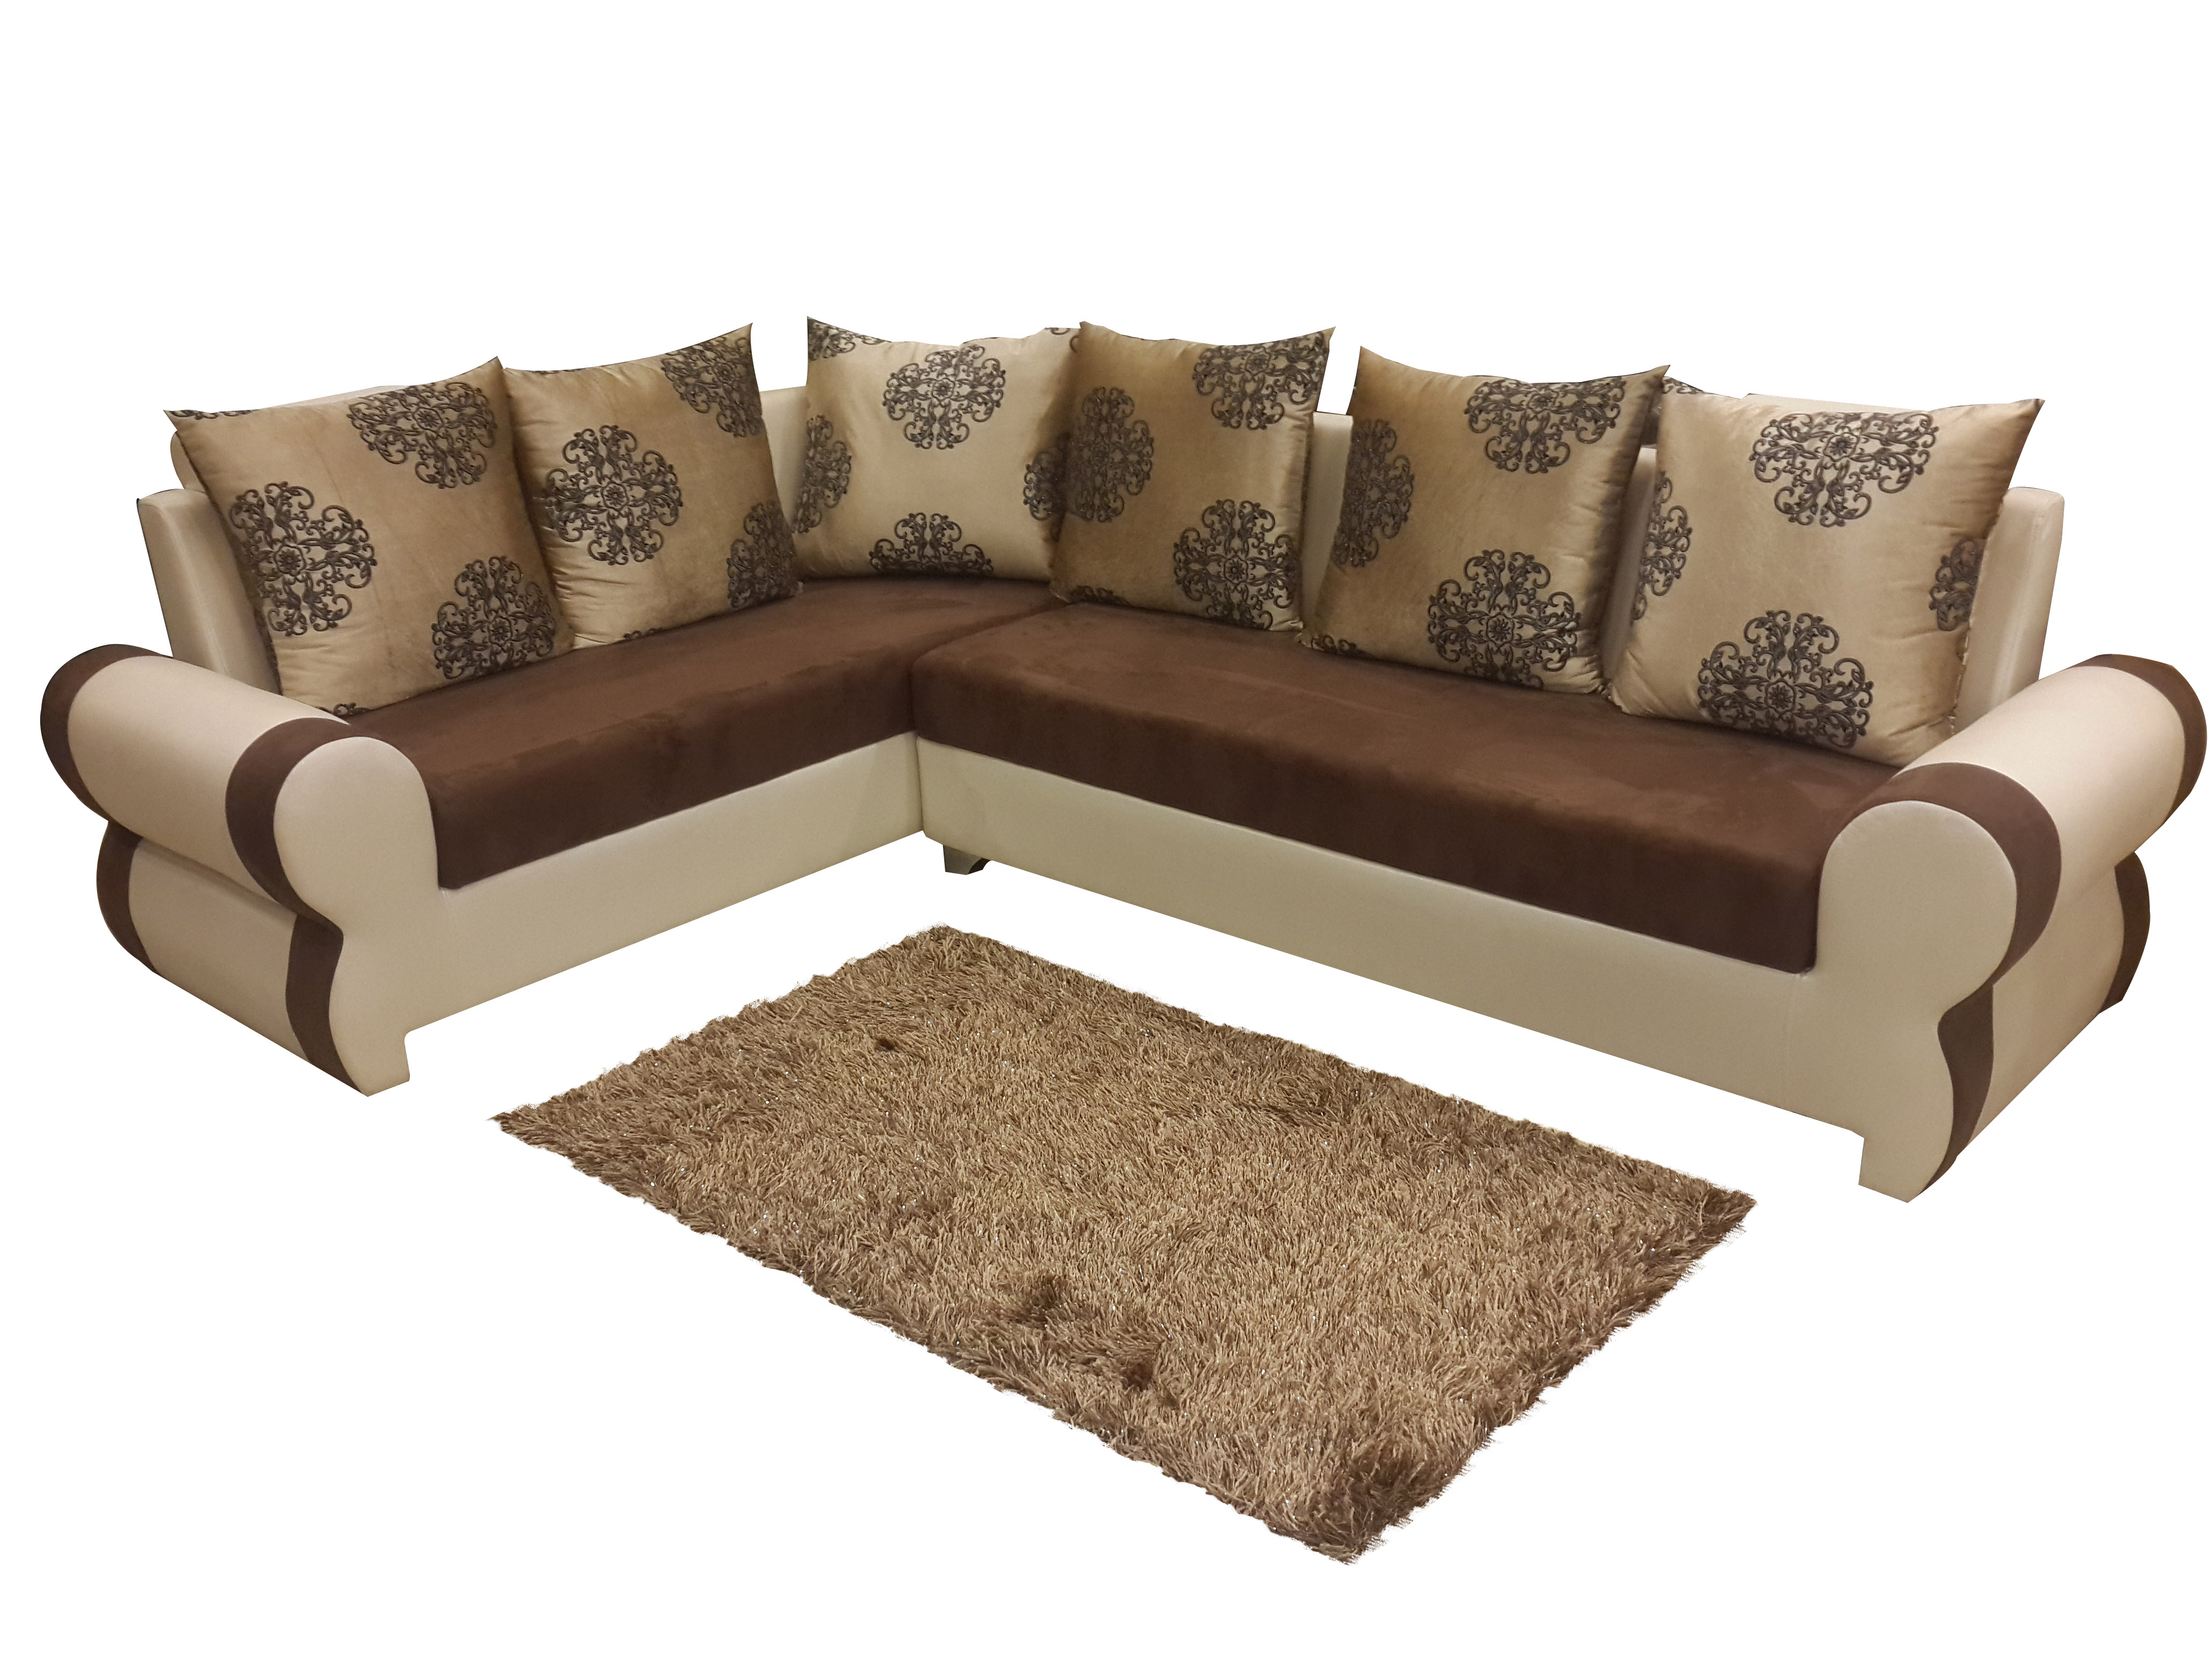 L Design Sofa Sofa Sets Rooms To Go Sofa Sets And What To Consider